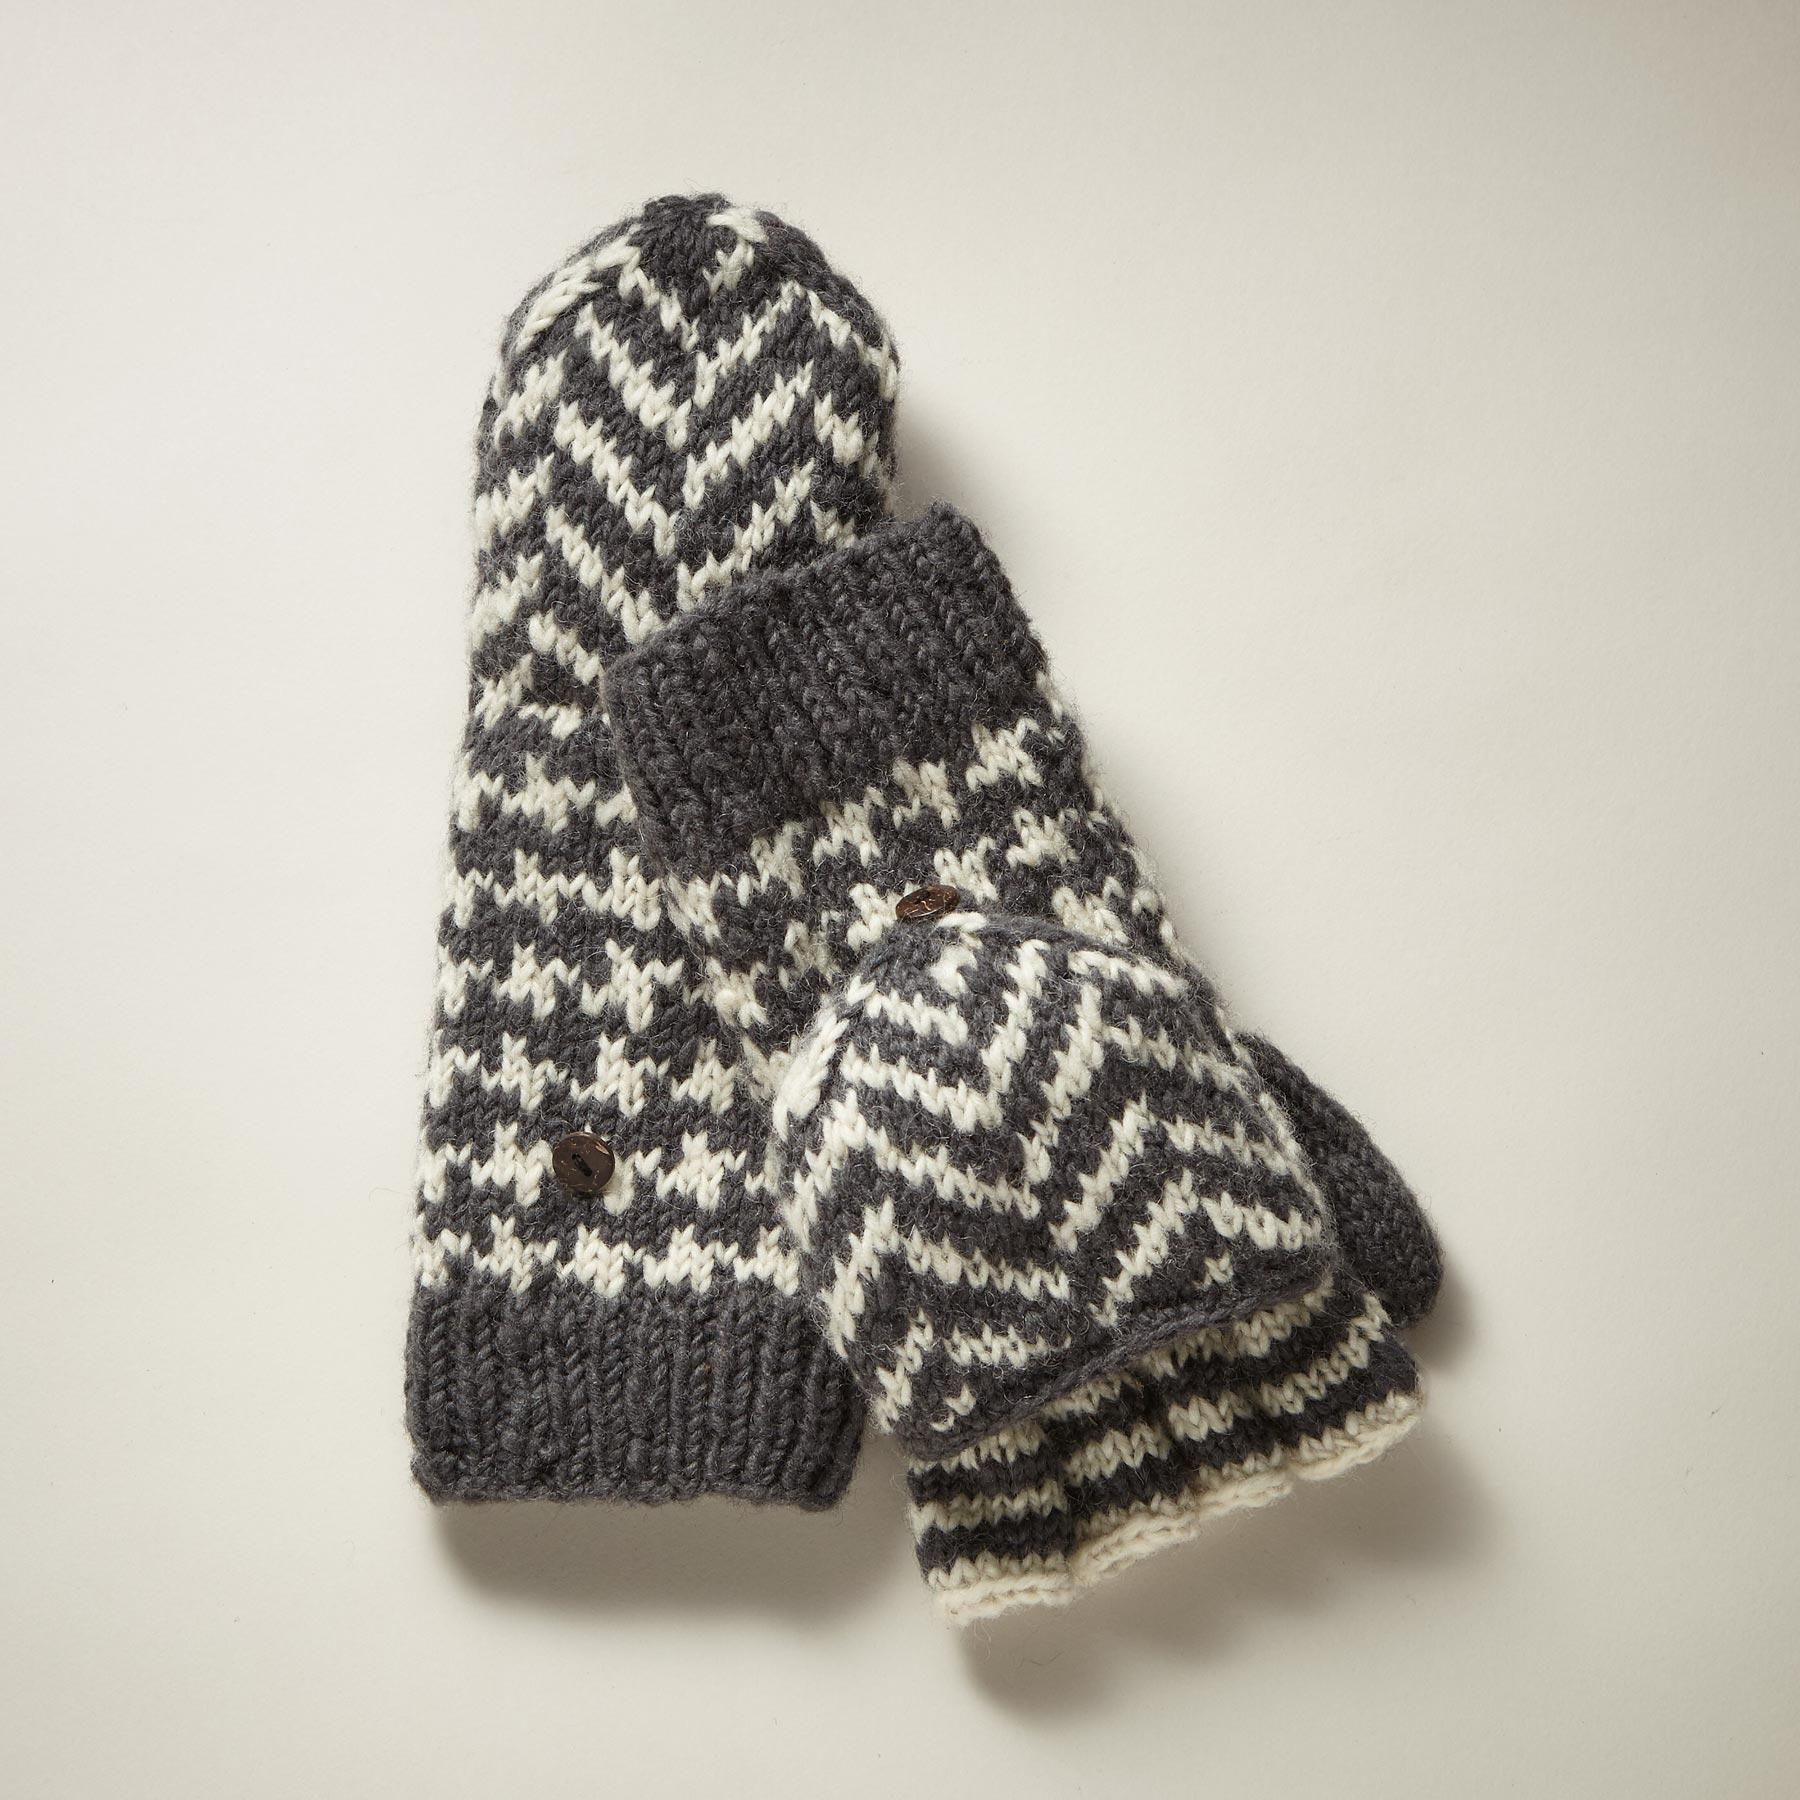 FIONA CONVERTIBLE MITTENS--Handcrafted, merino wool convertible mittens in a fresh mix of classic patterns. Fleece lined. Merino wool. Hand wash. Imported. Exclusive. One size fits most adults.